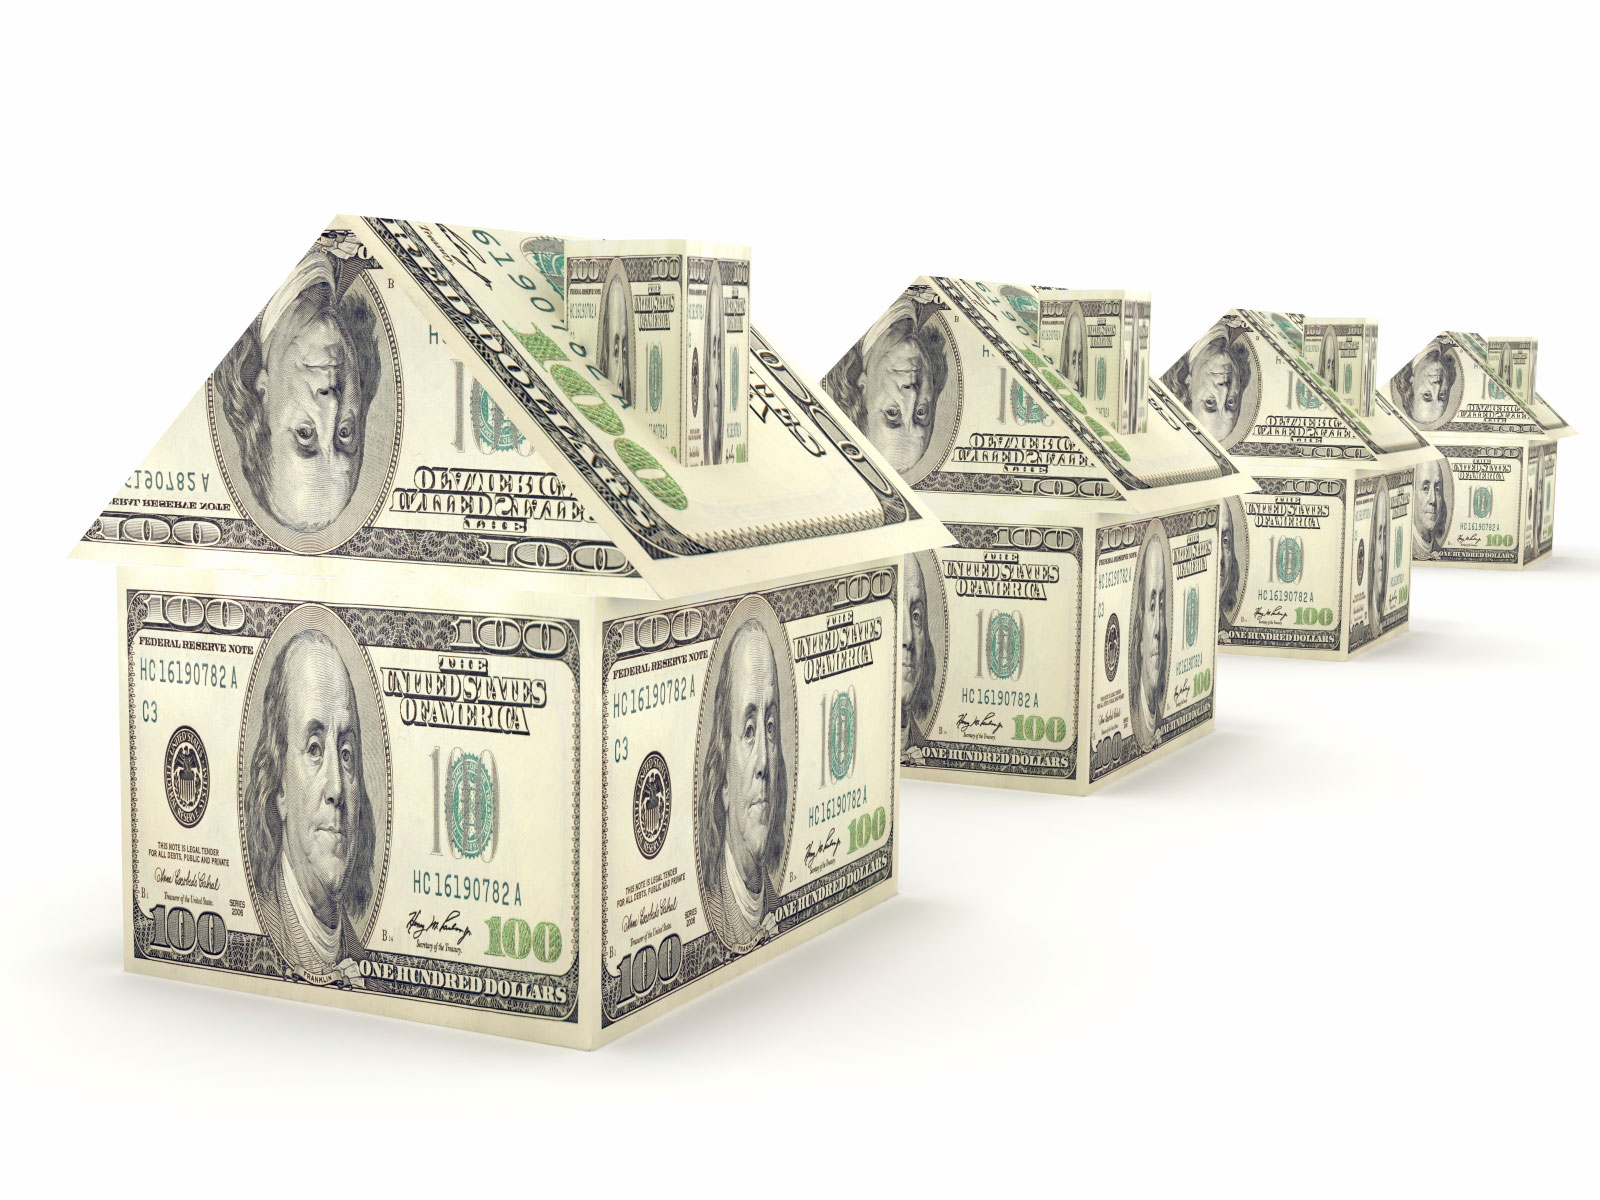 Time For An Equity Update On Your Santa Clarita Home?